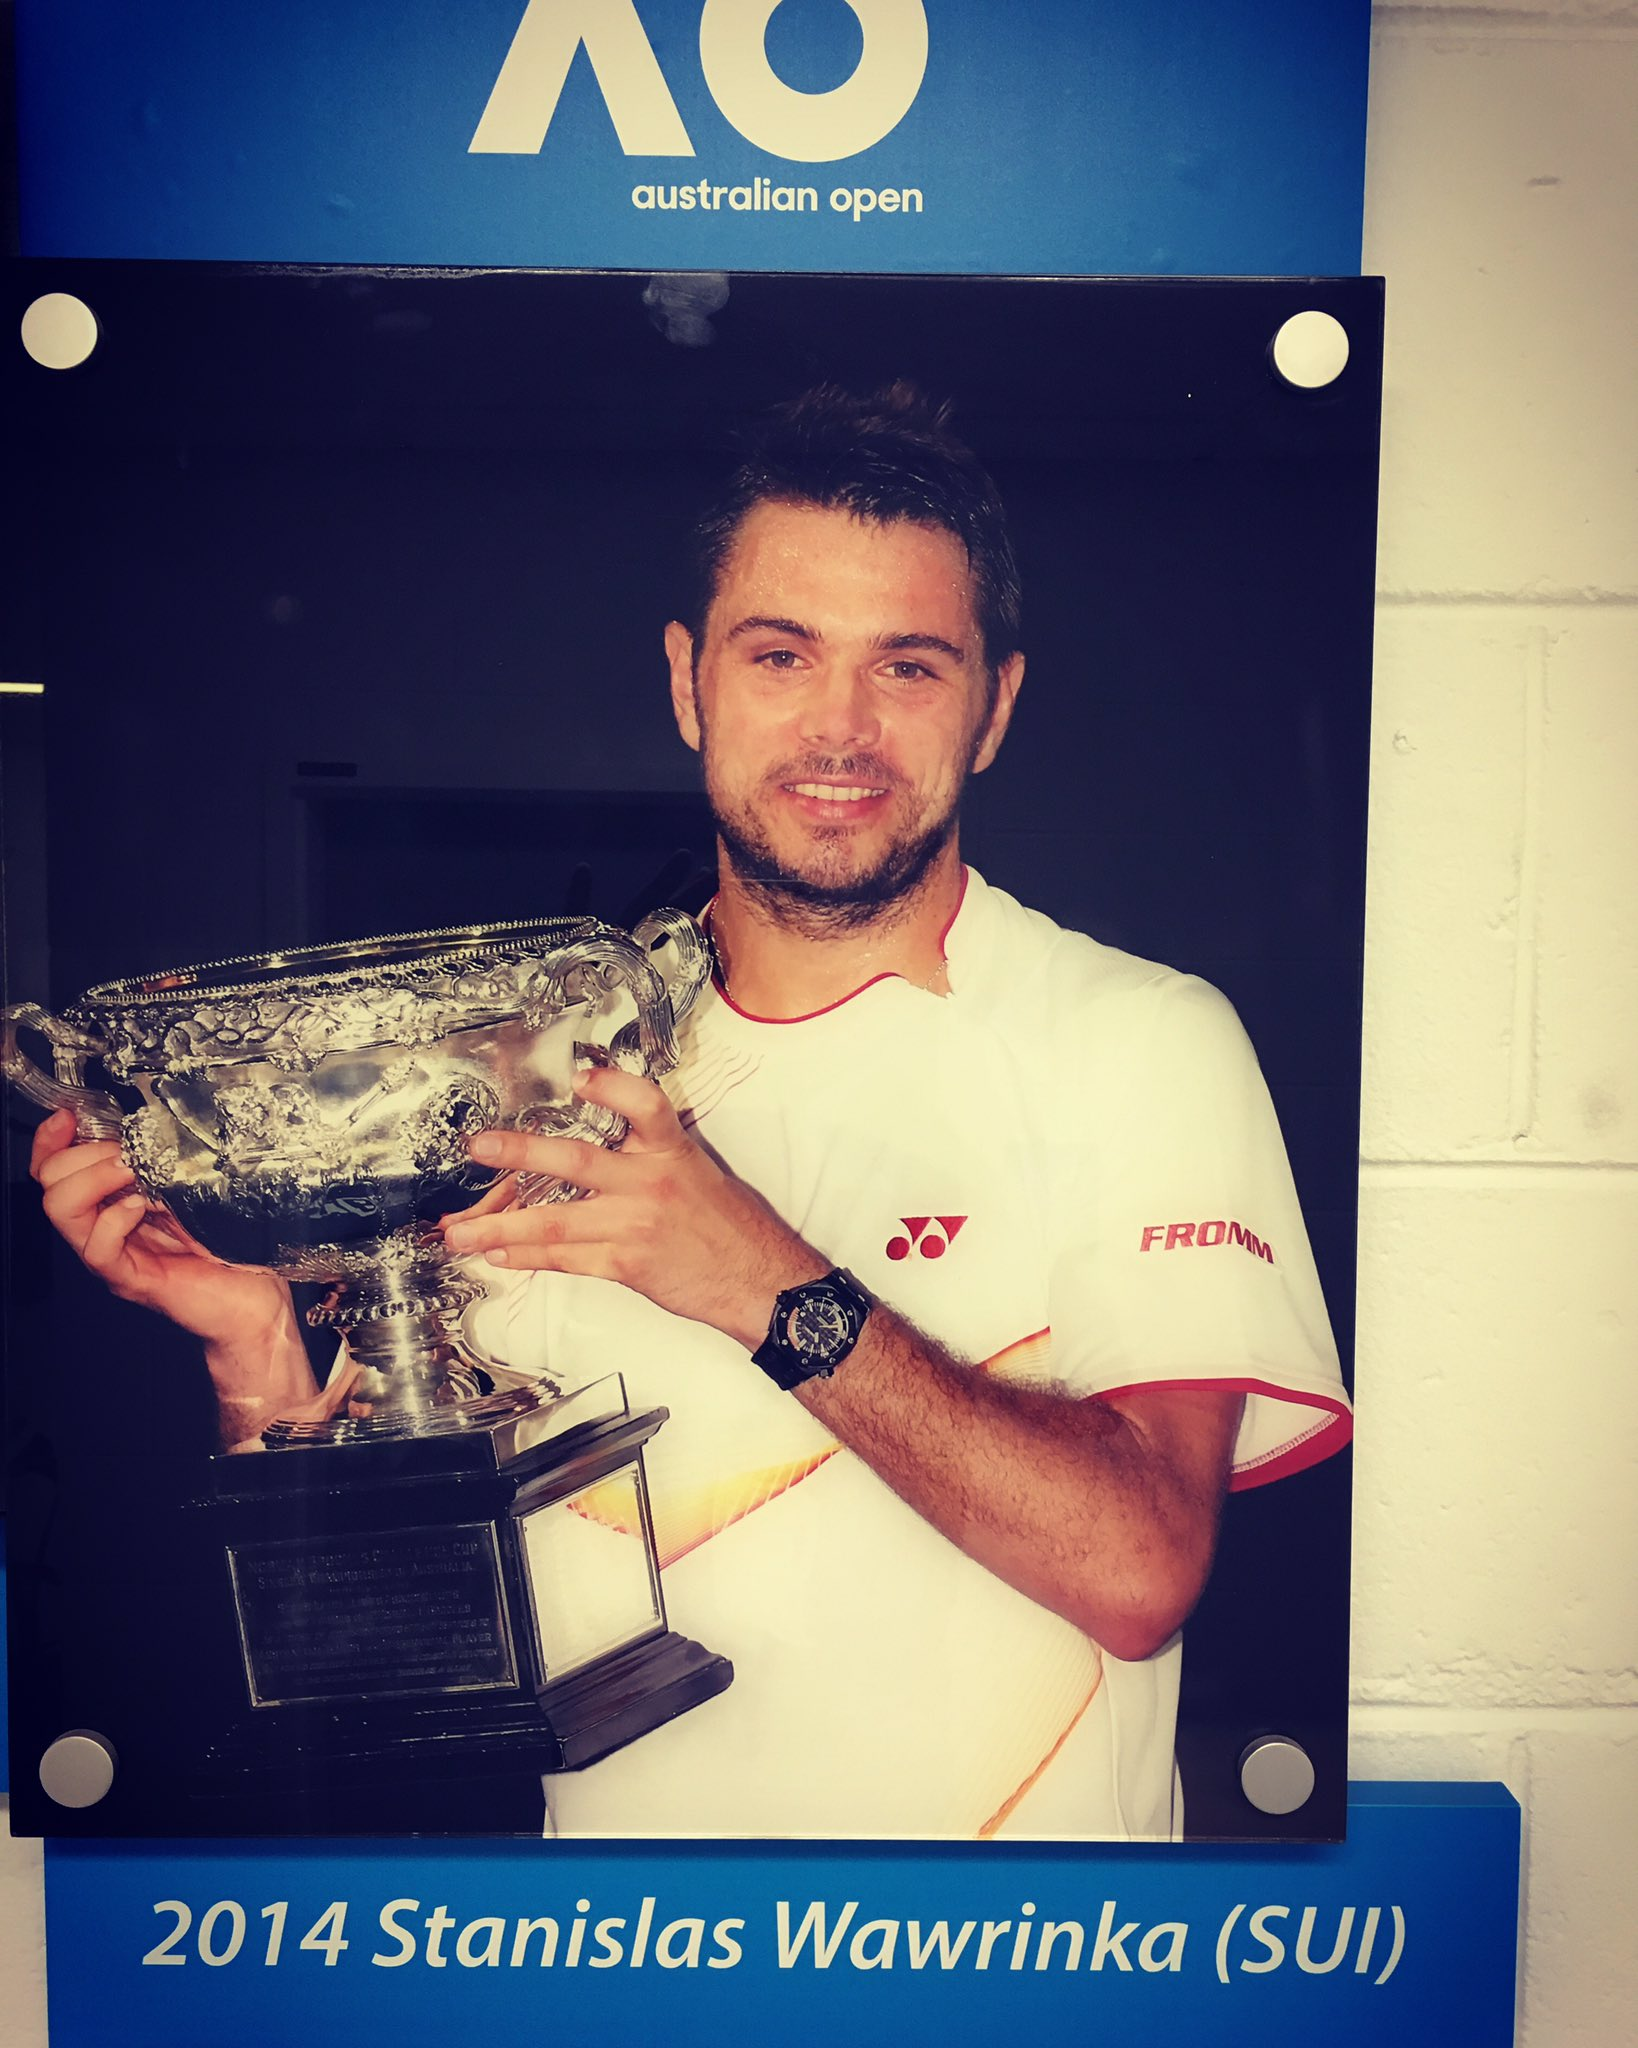 ��������2014�� @AustralianOpen https://t.co/0M5p8EtdJT